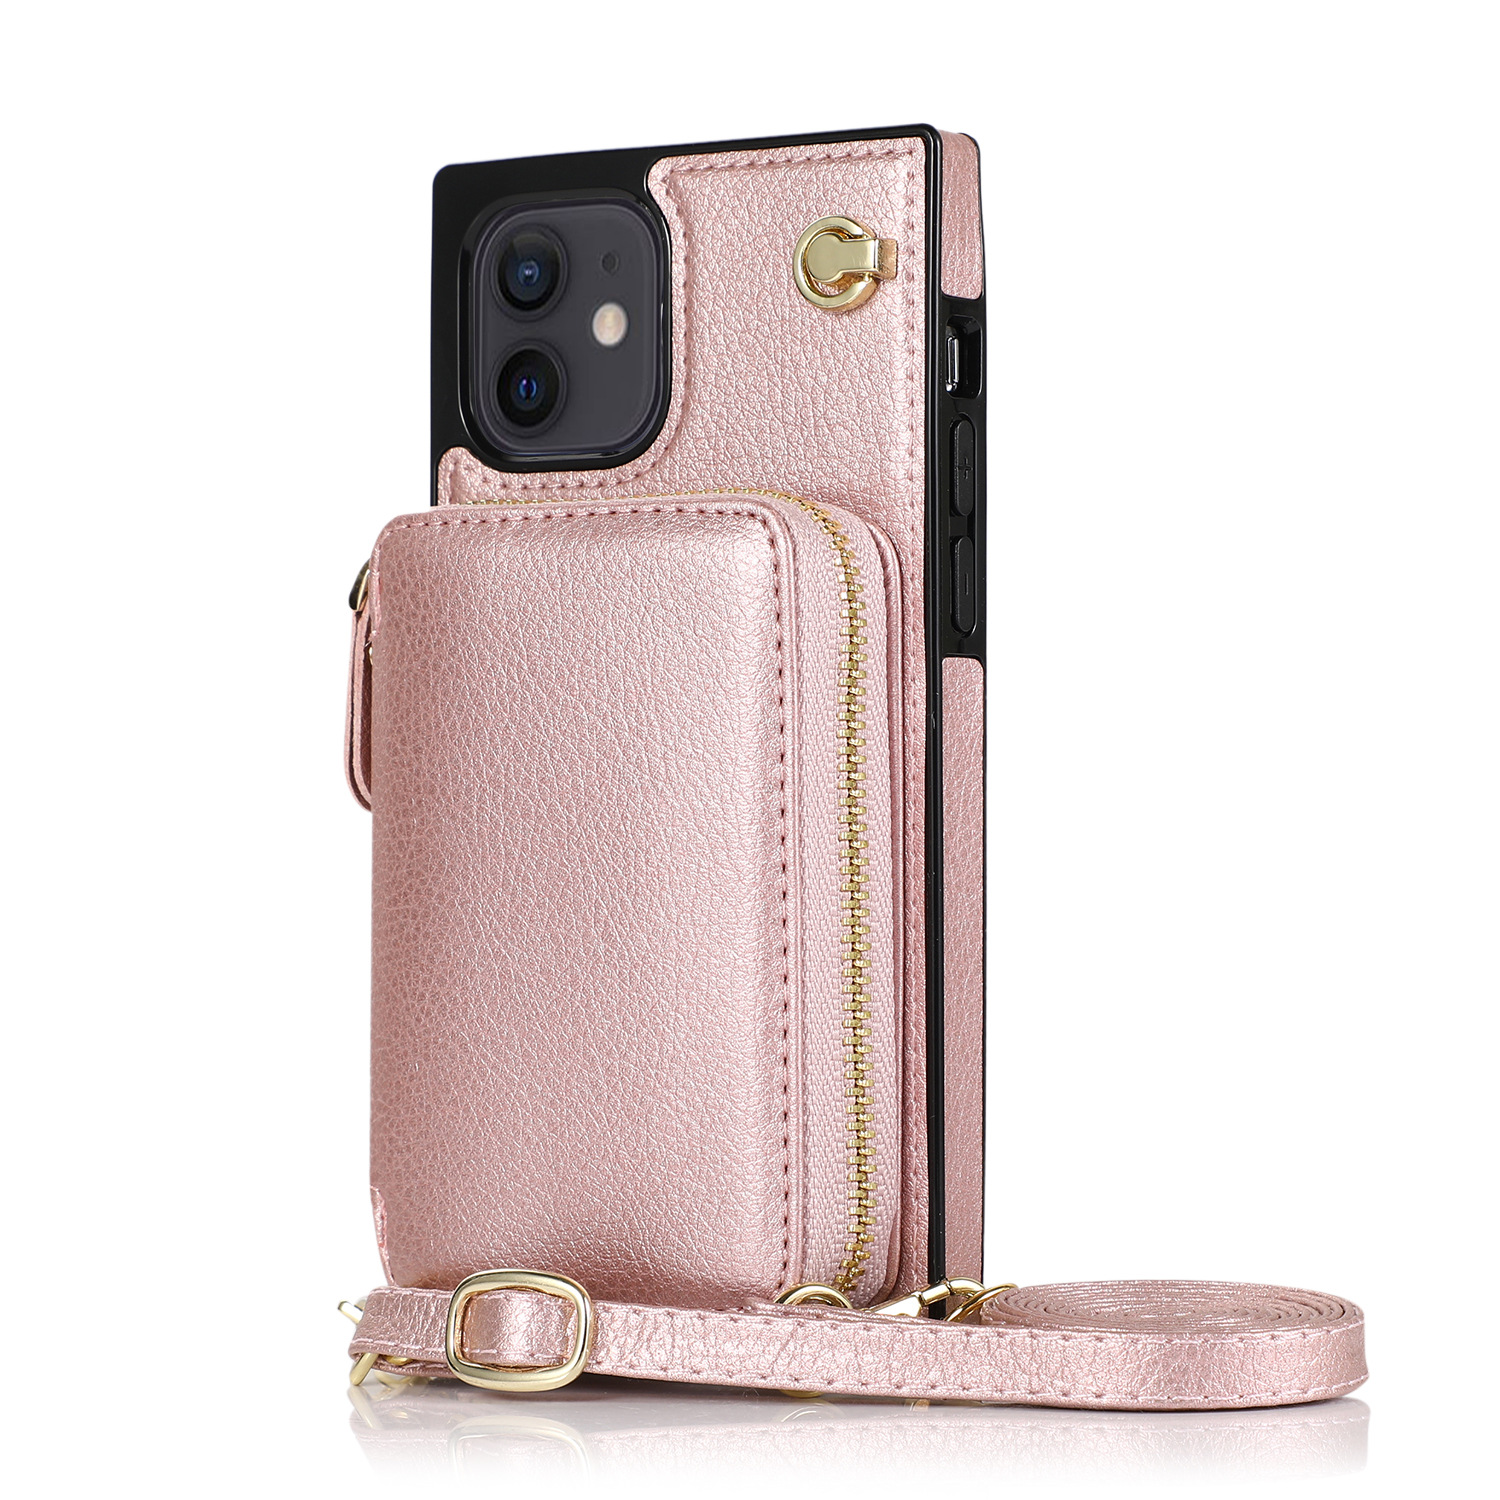 Card Slots Case For Iphone 12 11 Pro Max Wallet Crossbody Case Luxury Zipper Leather Bag Cover For Iphone 7 6 8 Plus X XS Max XR